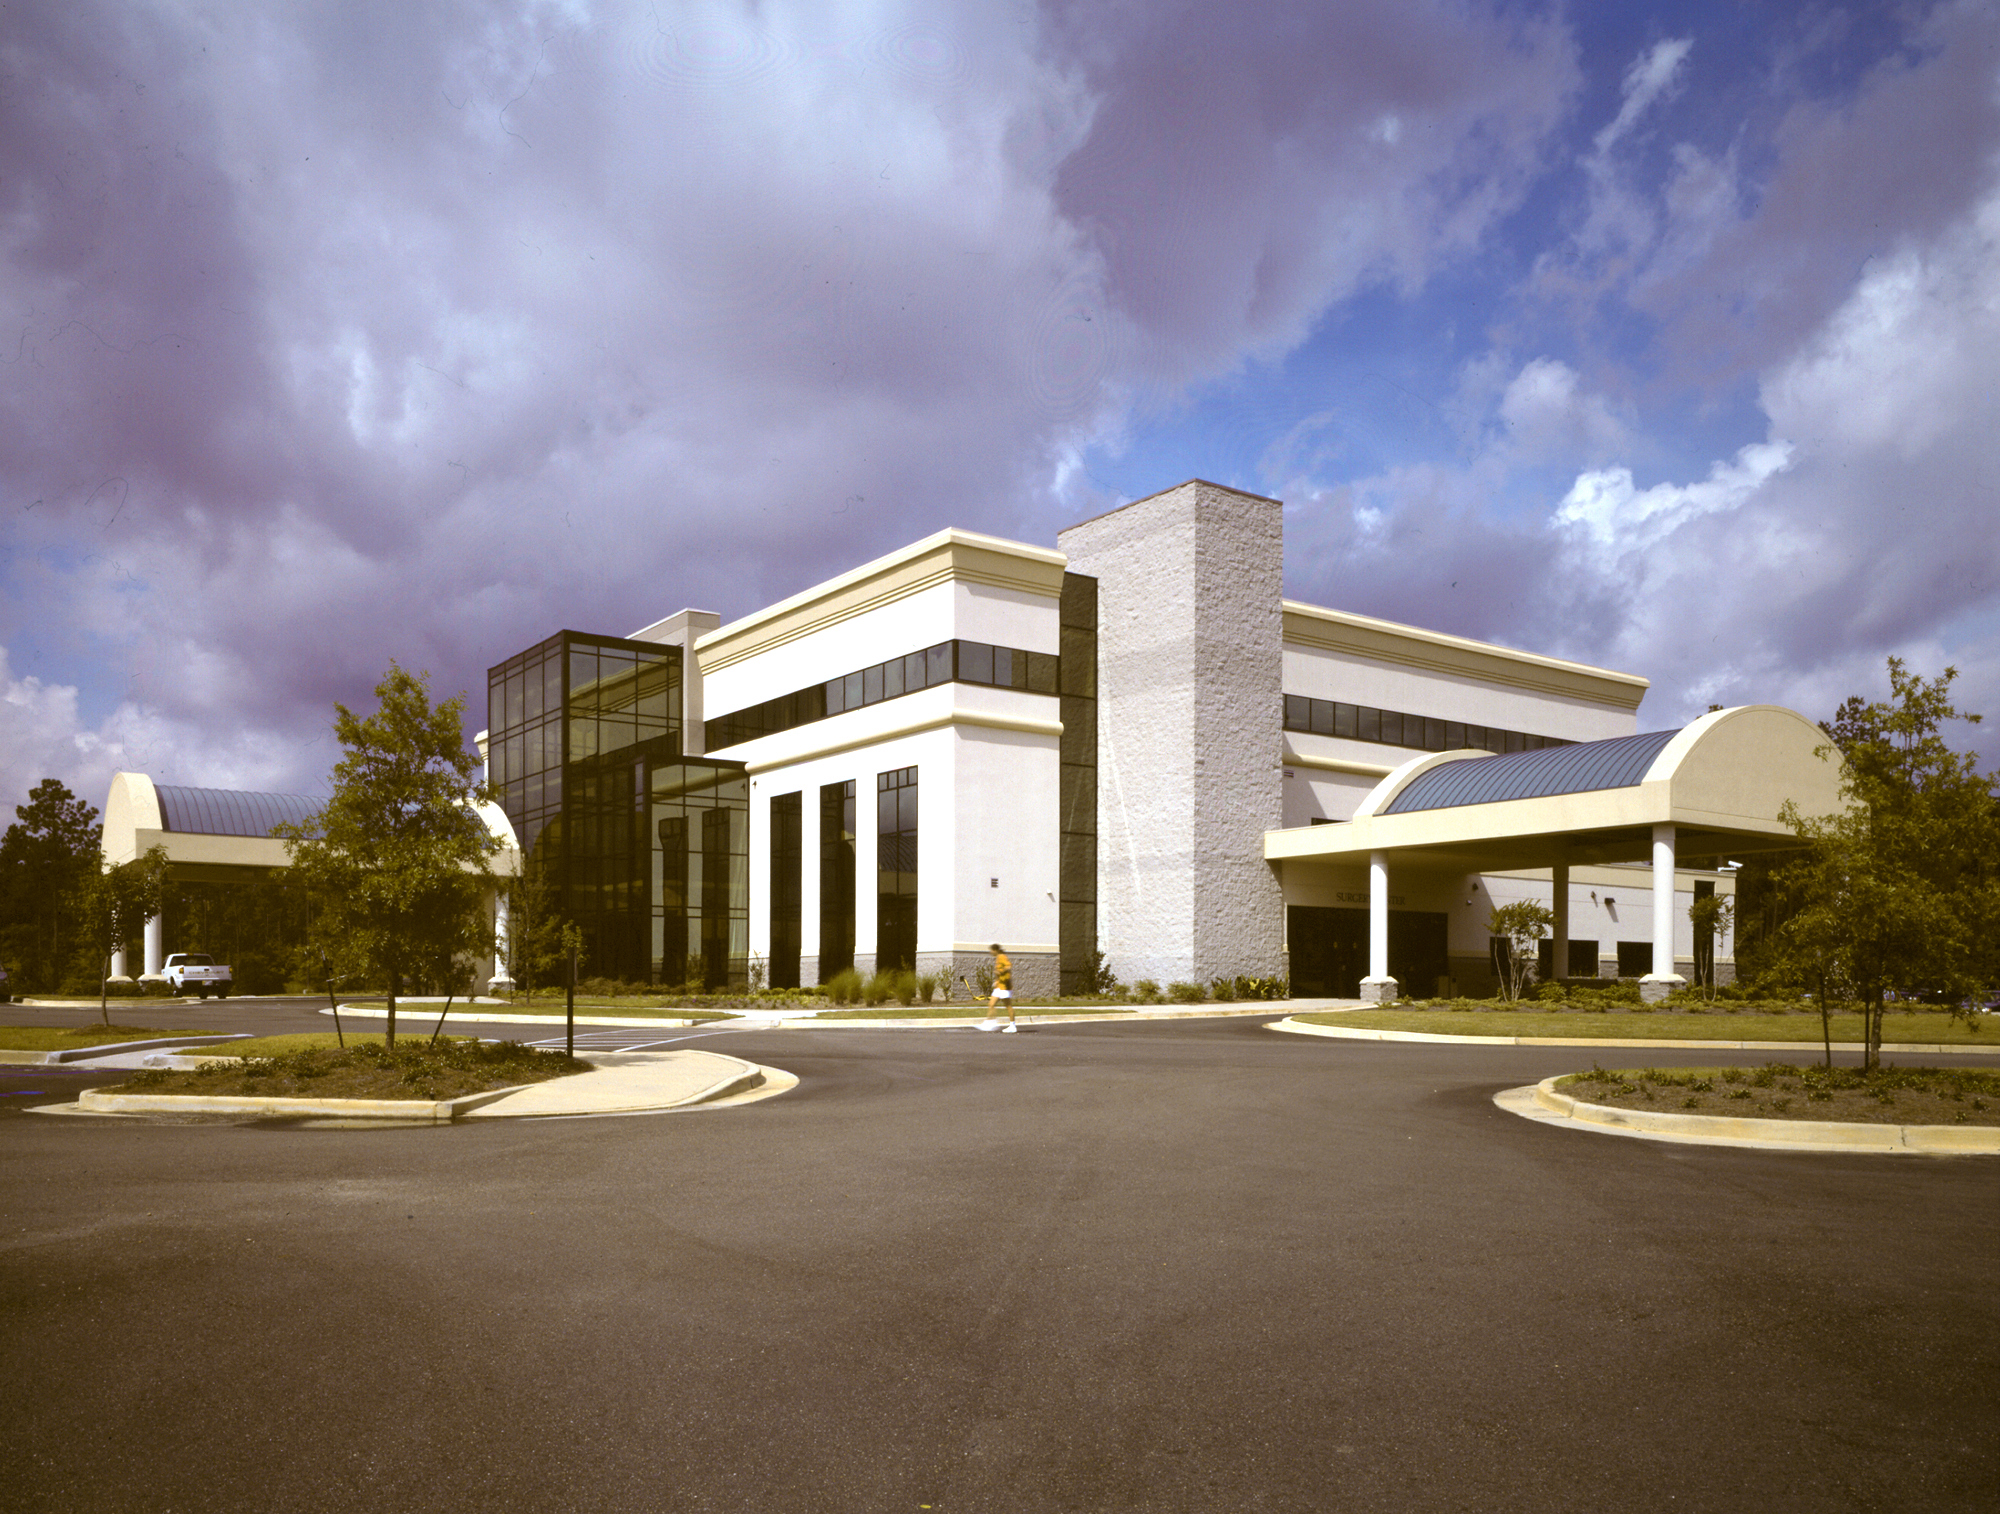 2-medical-architecture-projects-MD-Architects-Indiana.jpg